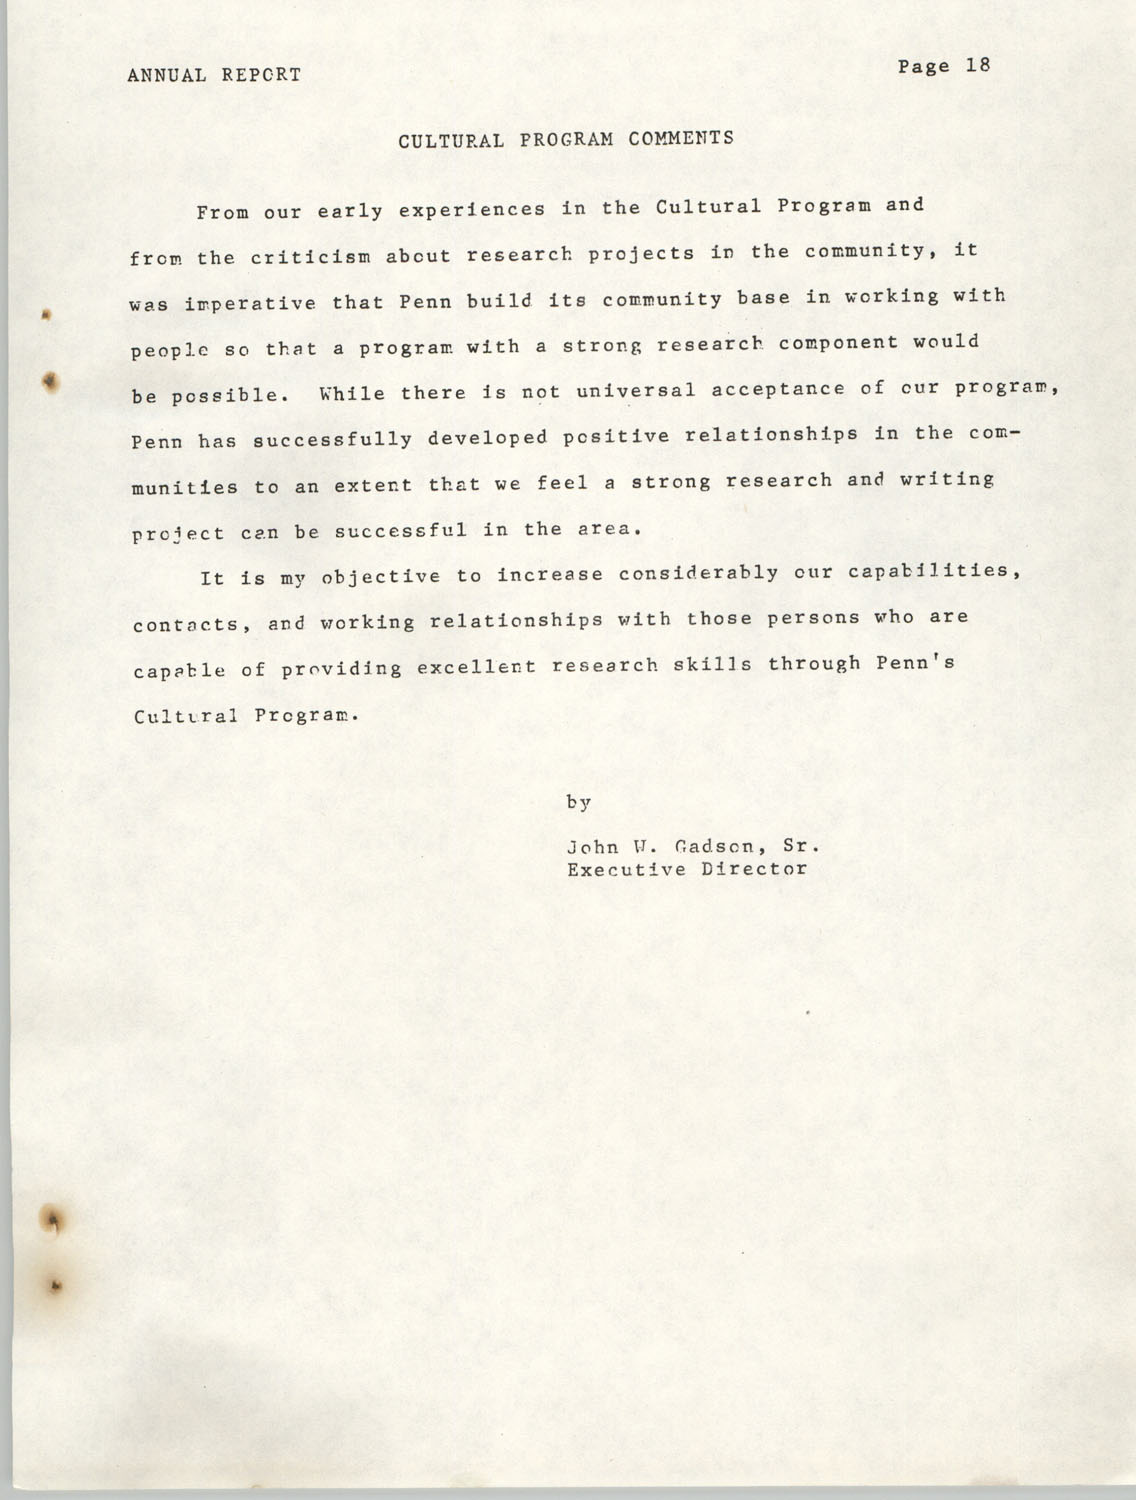 Annual Report, Penn Community Services, 1974, Page 18